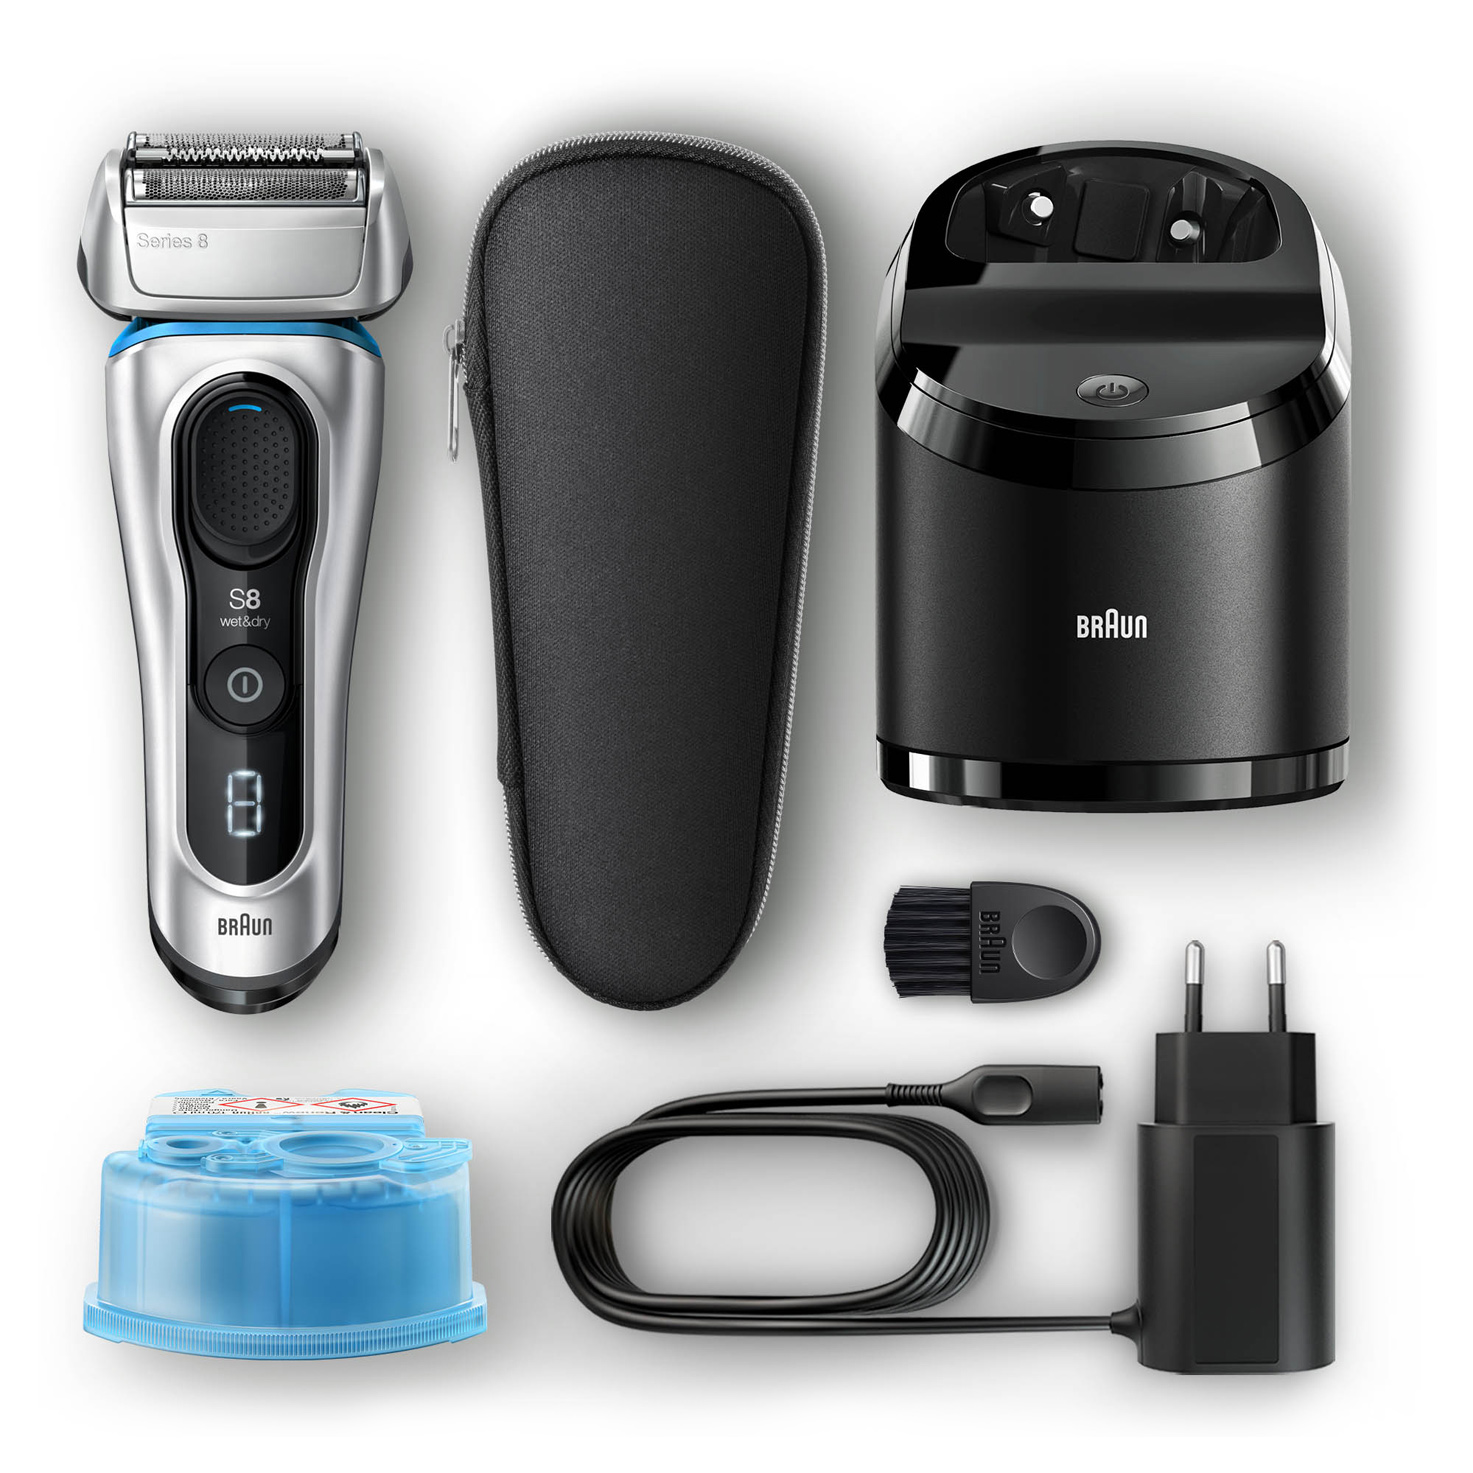 Series 8 8390cc shaver - What´s in the box